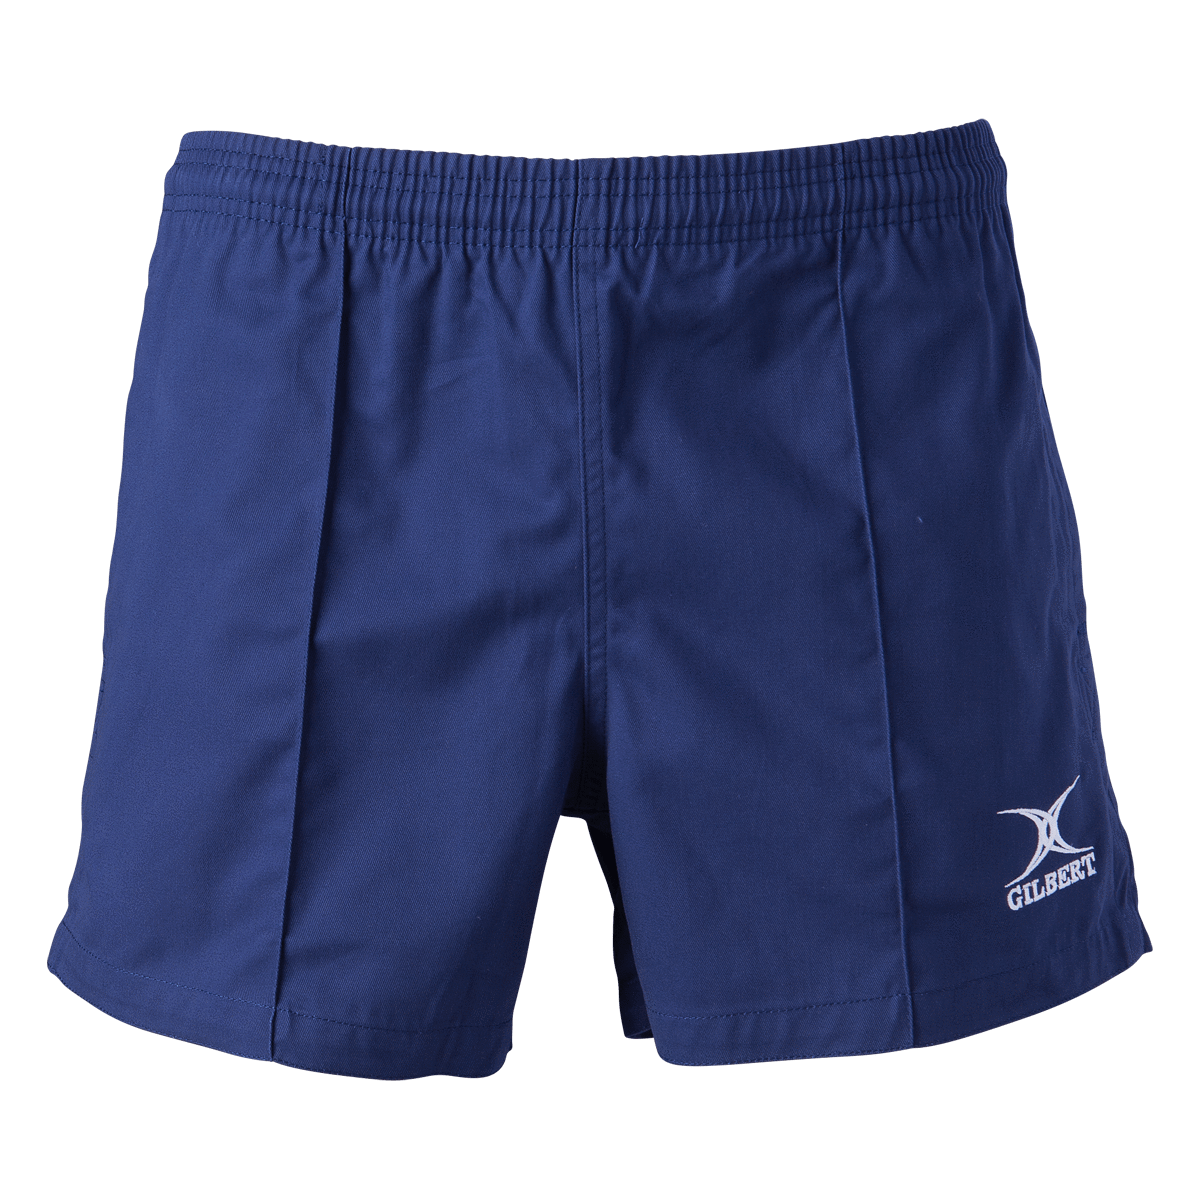 Gilbert Navy Kiwi Pro Youth Shorts